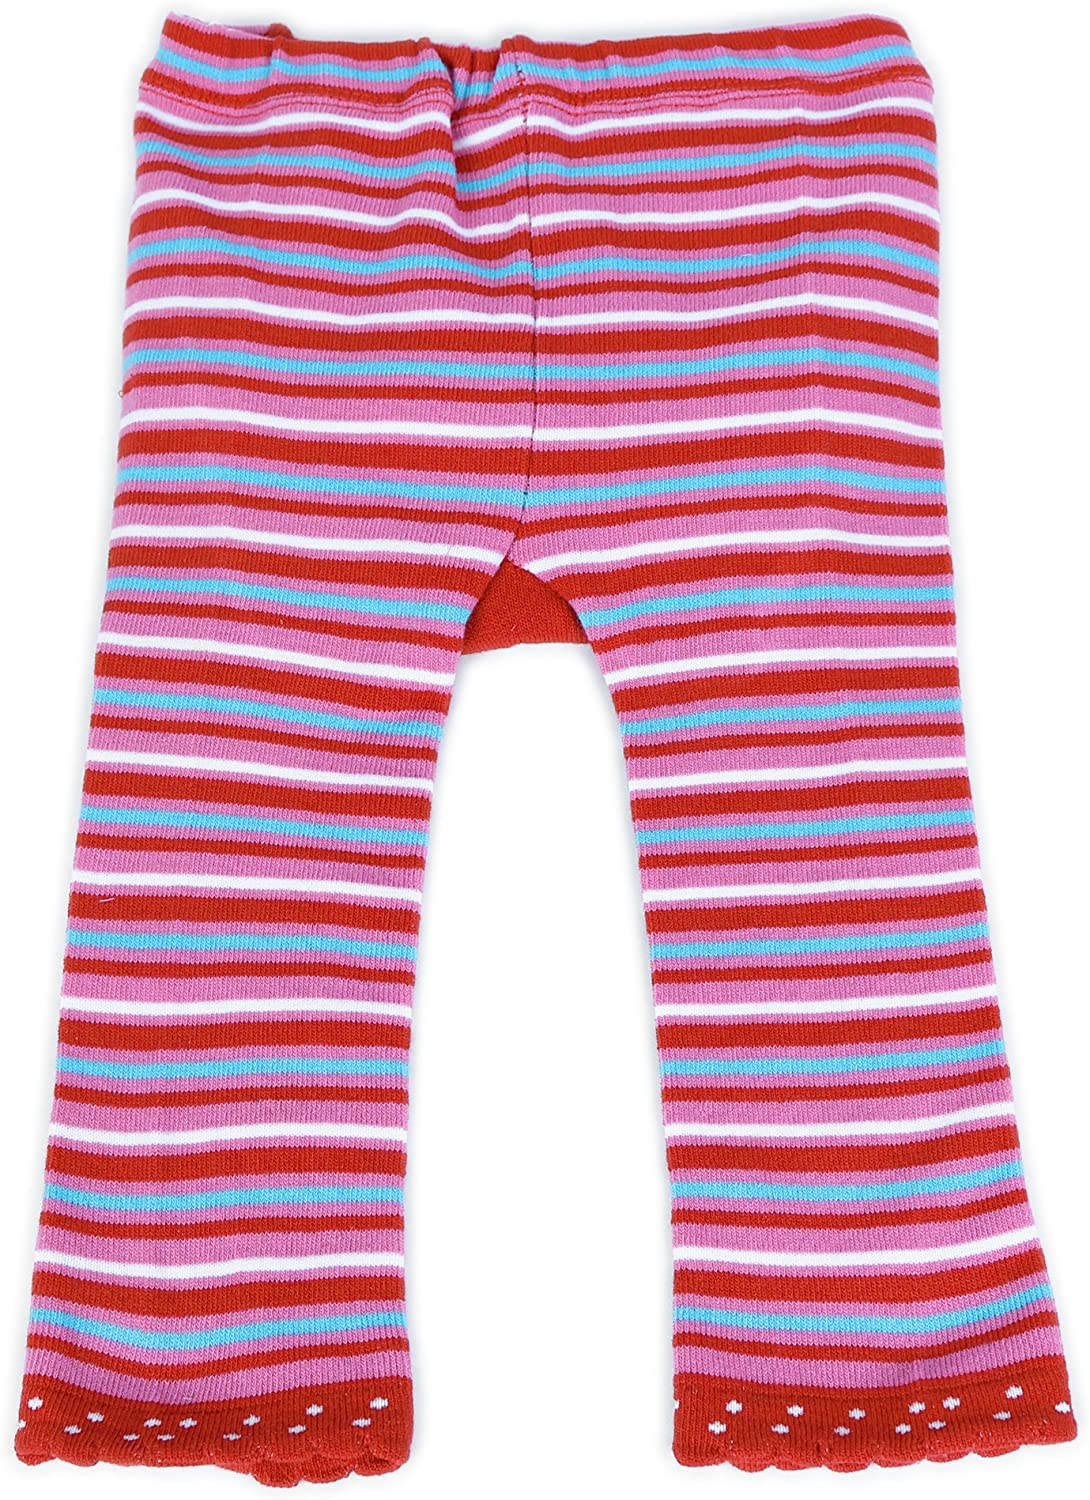 Girls and Boys Designs Baby /& Toddler Wooly Leggings by Dotty Fish 6-12 months 12-24 months /& 24+ months